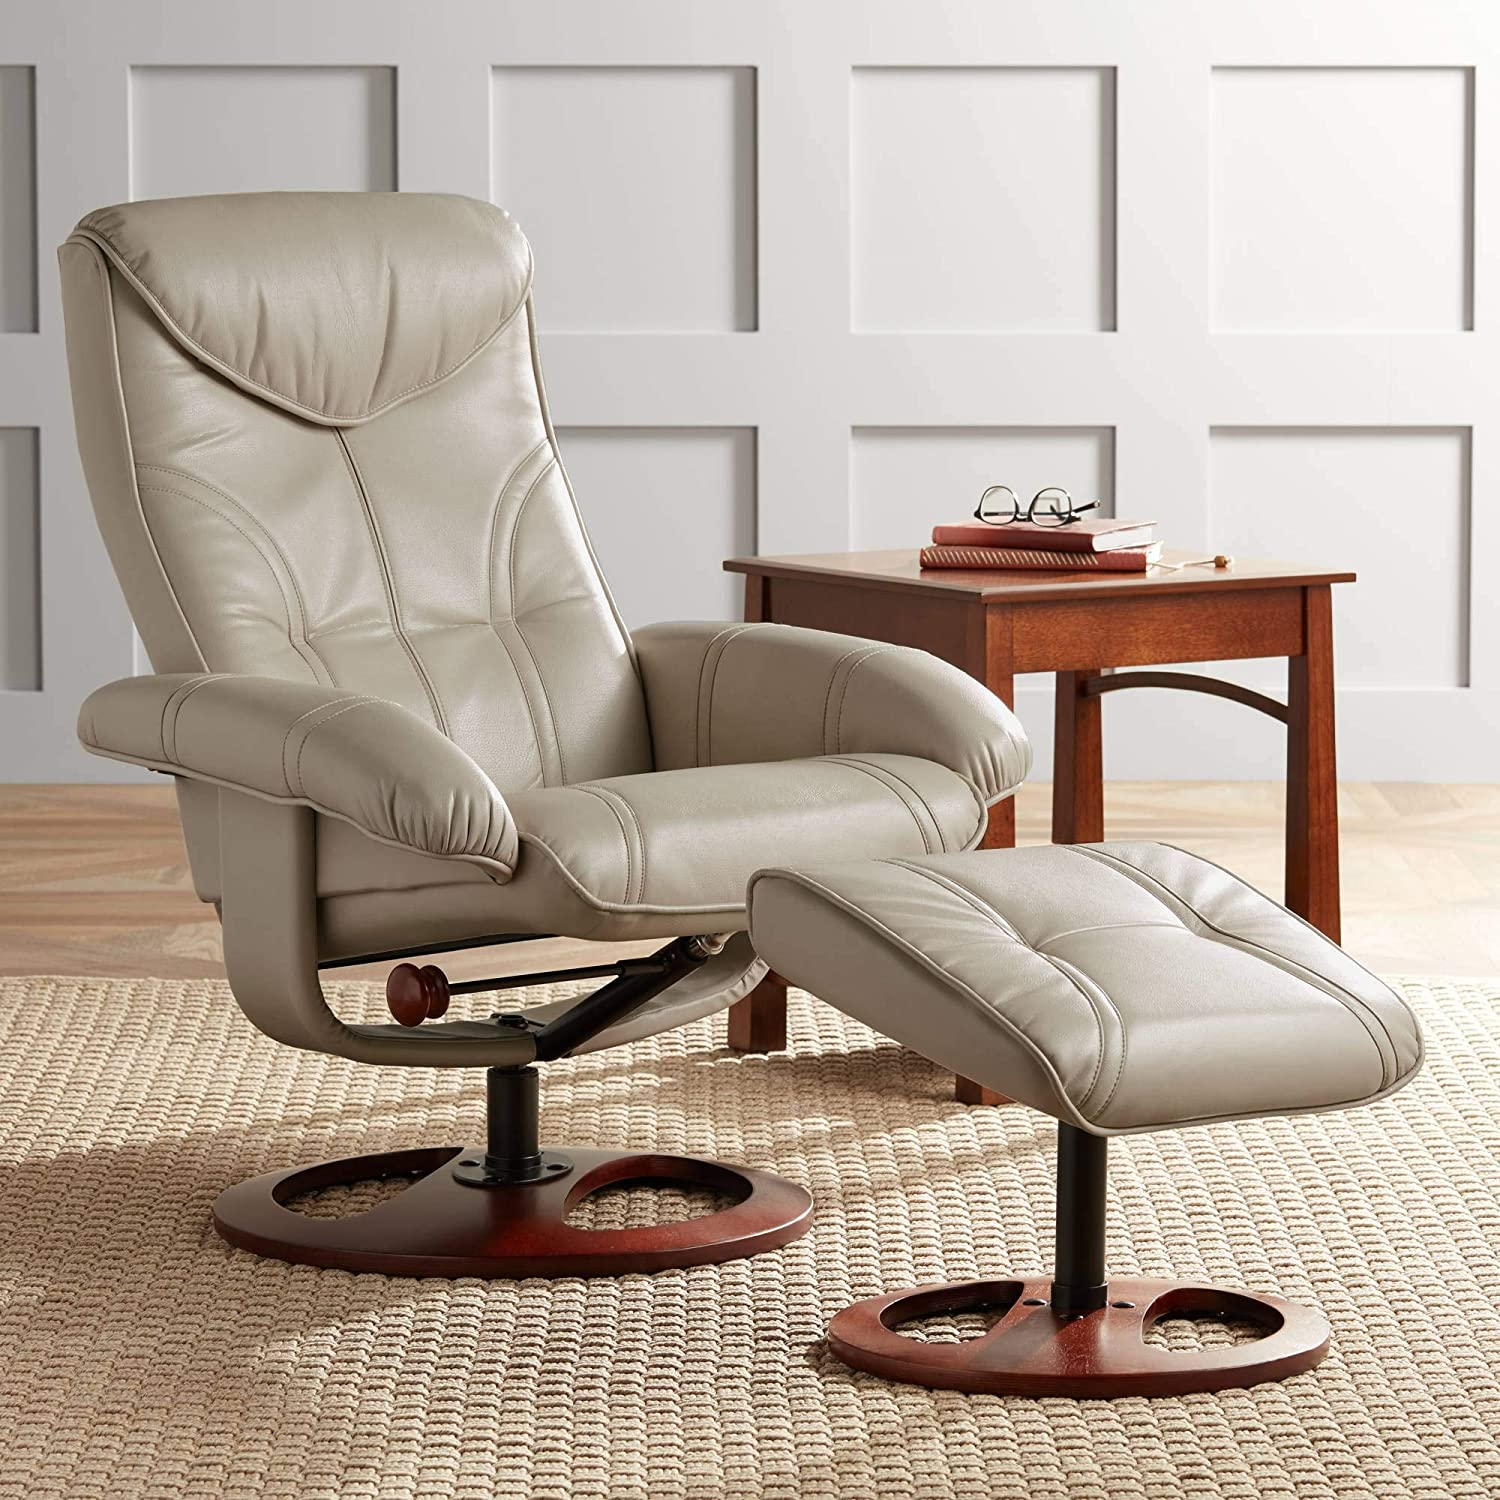 Newport Taupe Swivel Recliner and Slanted Ottoman